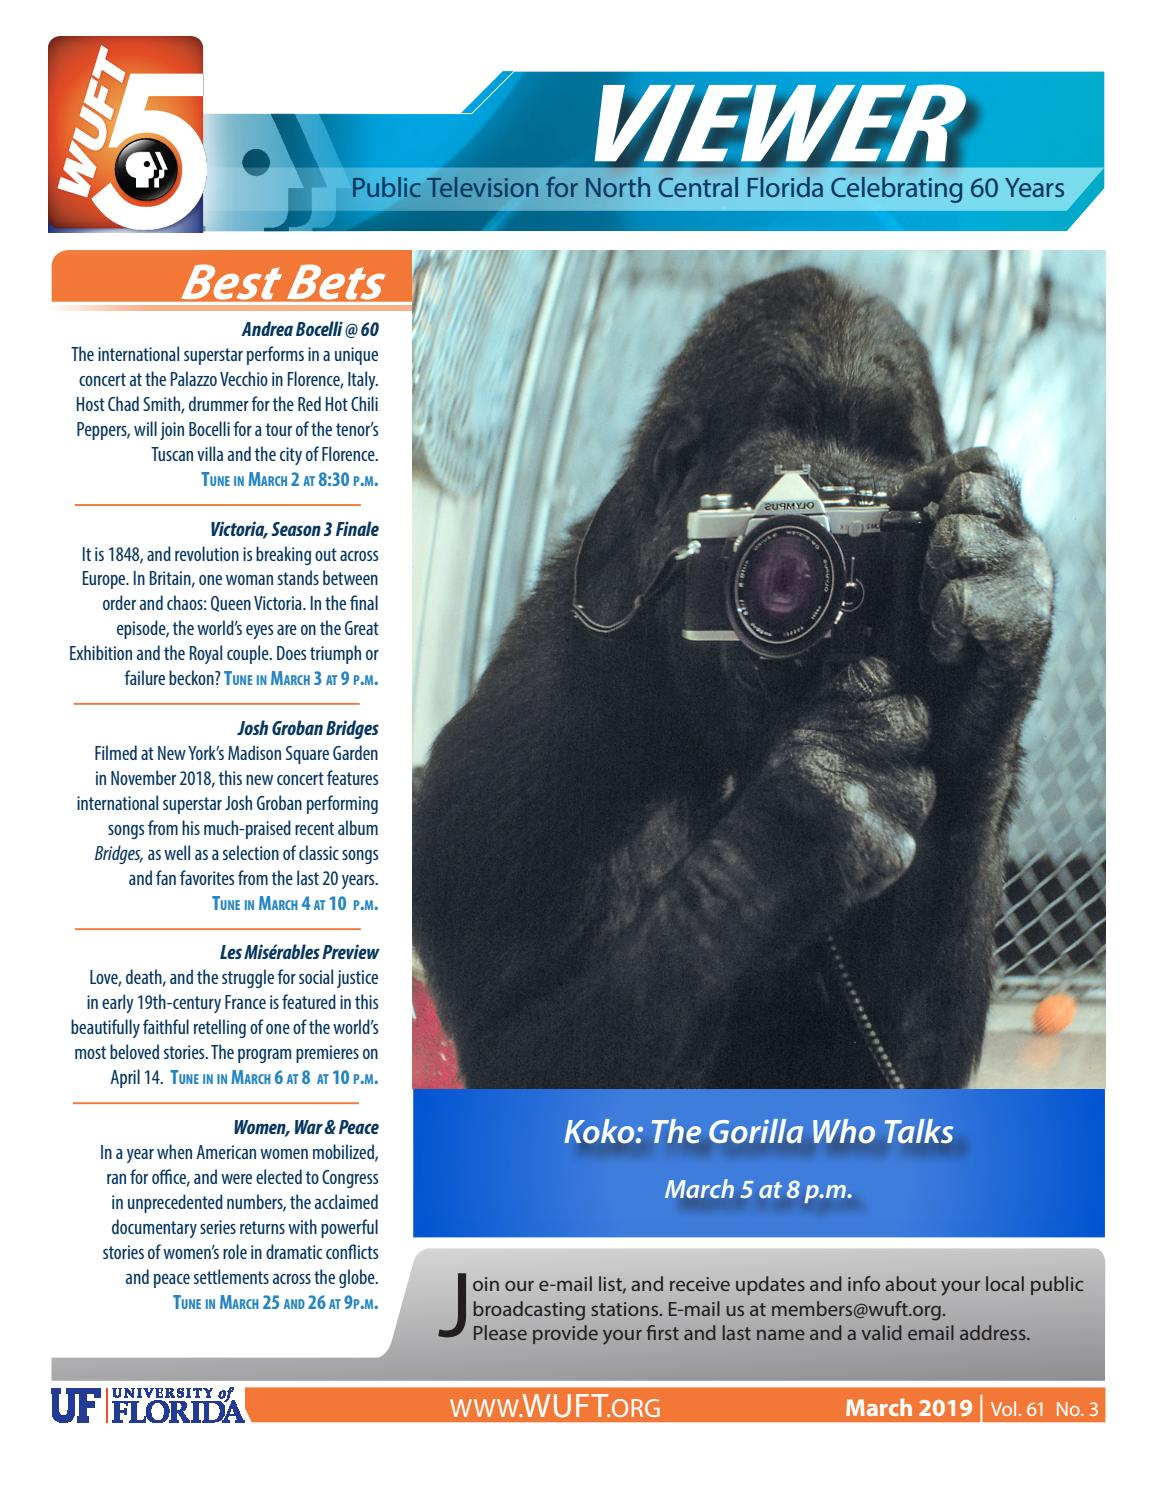 WUFT TV Viewer Guide - March 2019 by UF CJC - issuu